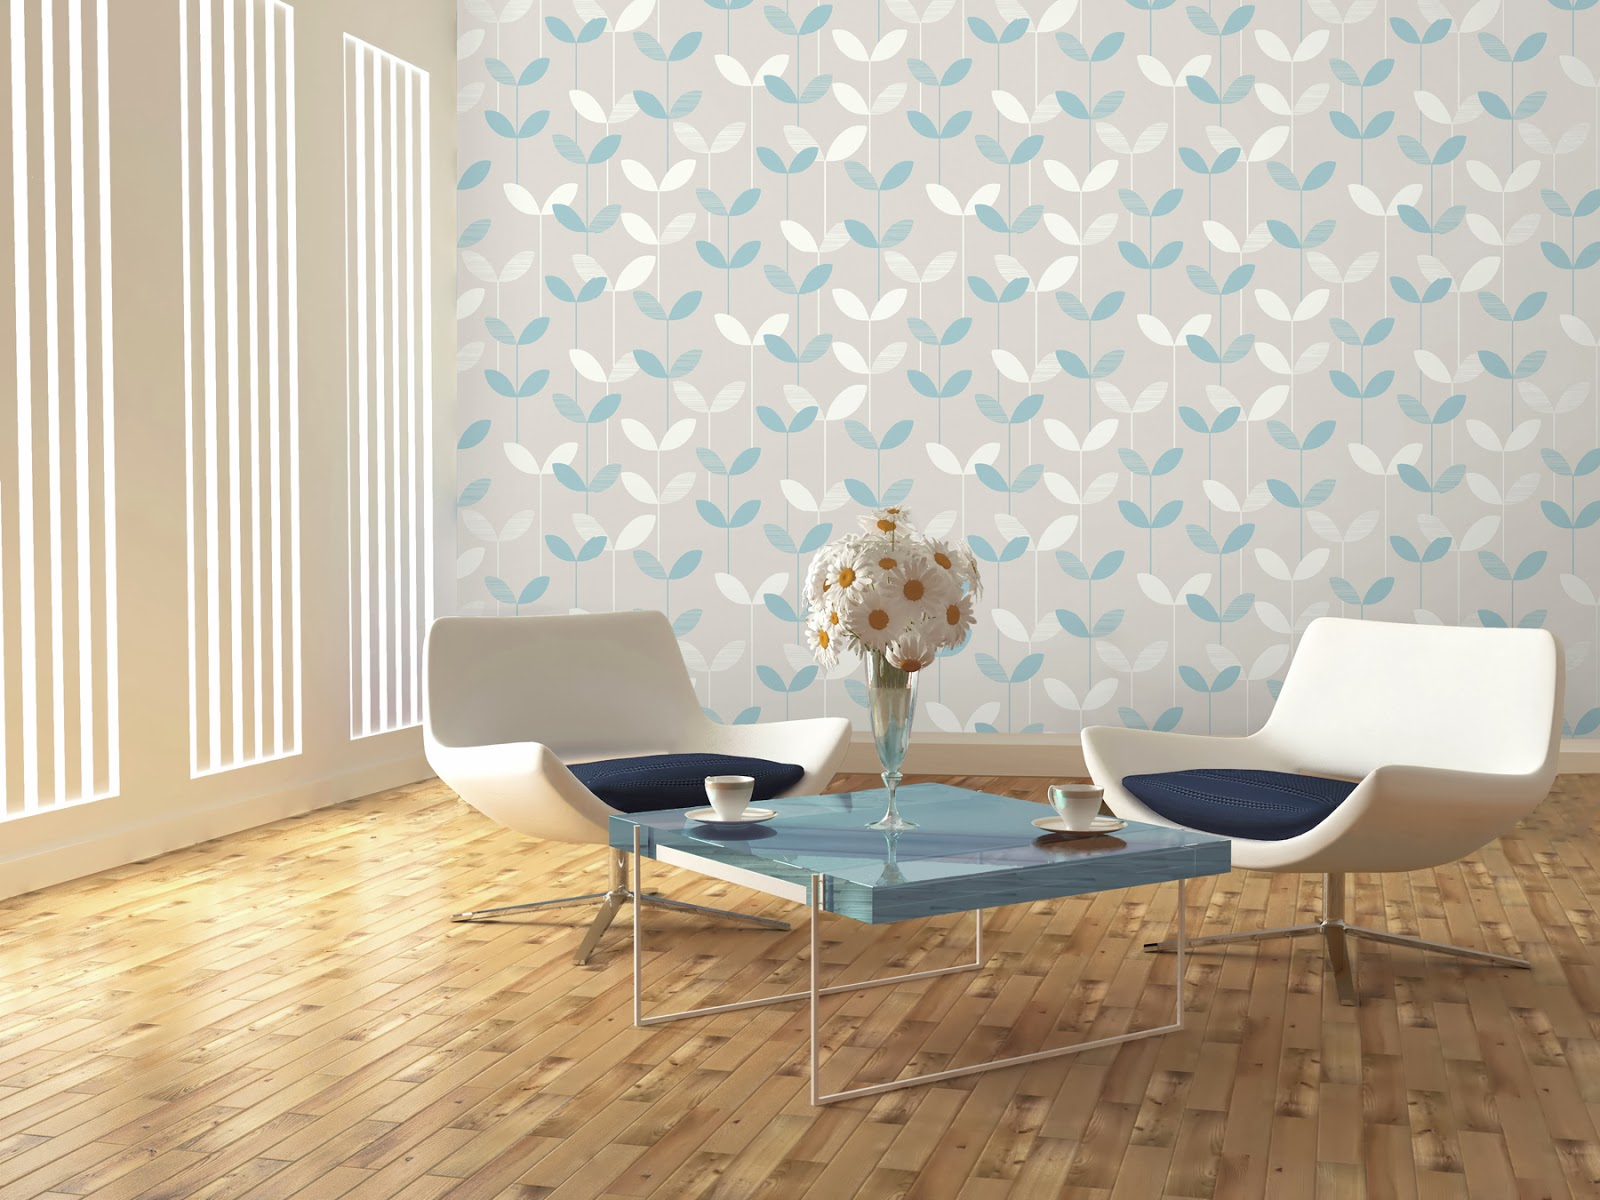 https://www.wallcoveringsforless.com/shoppingcart/prodlist1.CFM?page=_prod_detail.cfm&product_id=42688&startrow=25&search=2533&pagereturn=_search.cfm